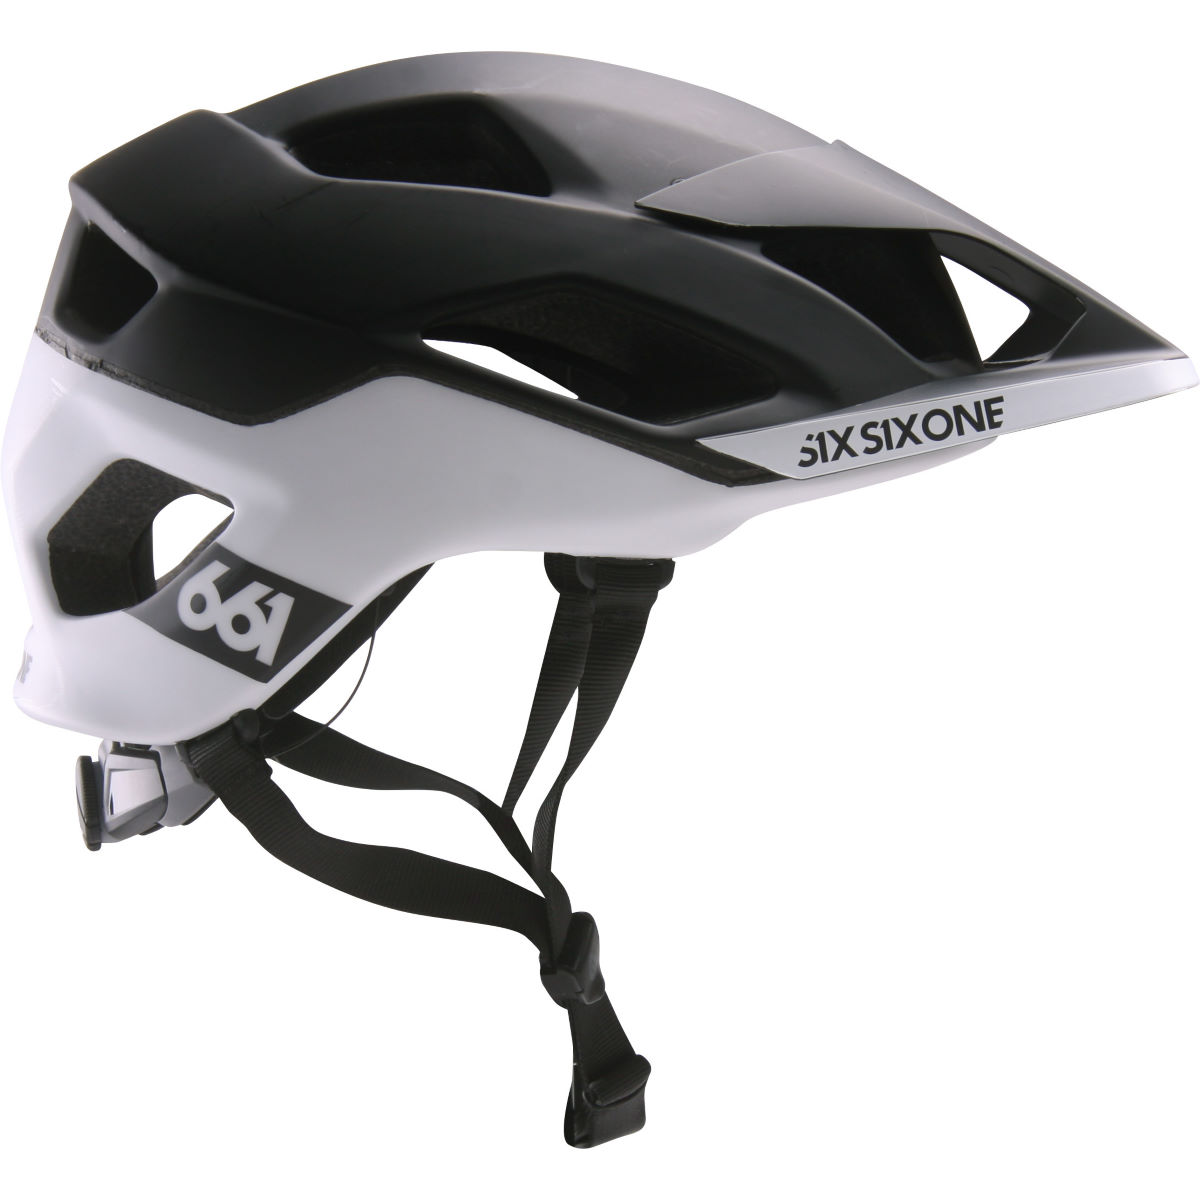 Casque SixSixOne Evo AM Patrol MIPS - XS/S Black - White Casques VTT